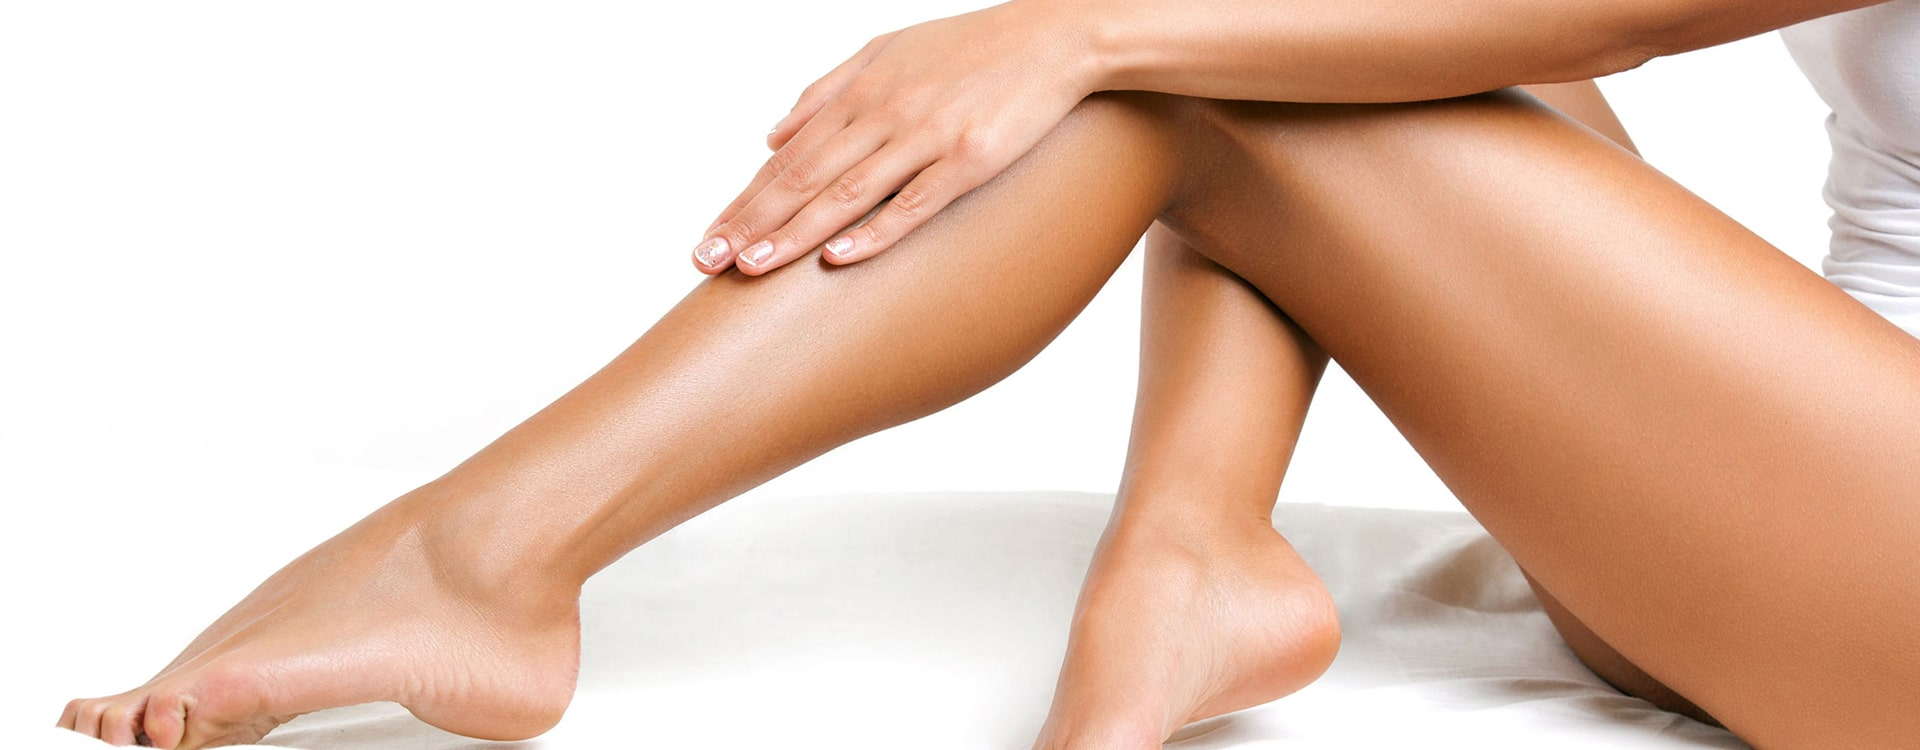 laser hair removal service columbia sc